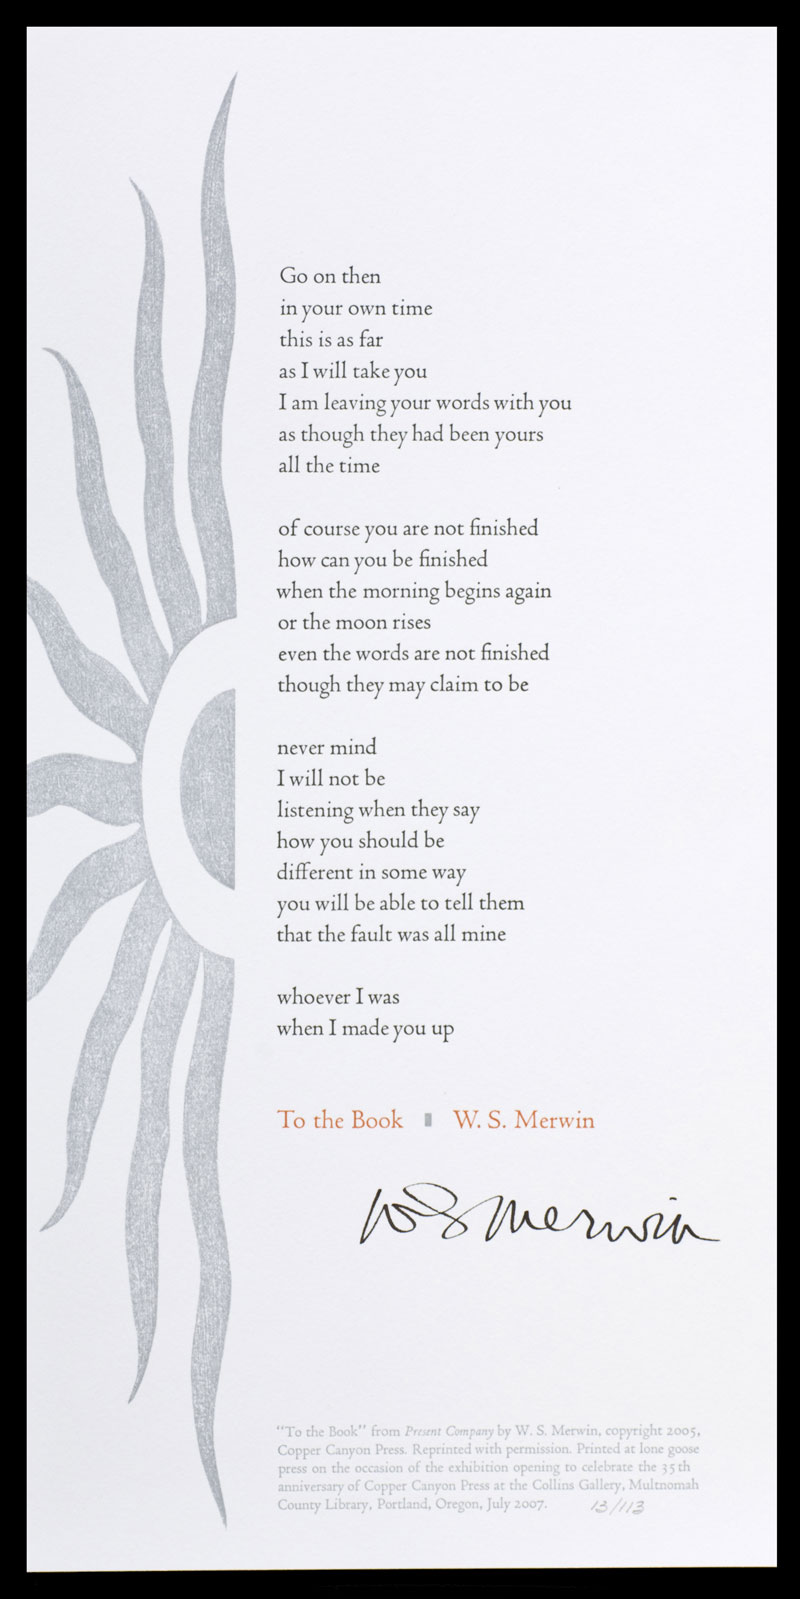 To the Book